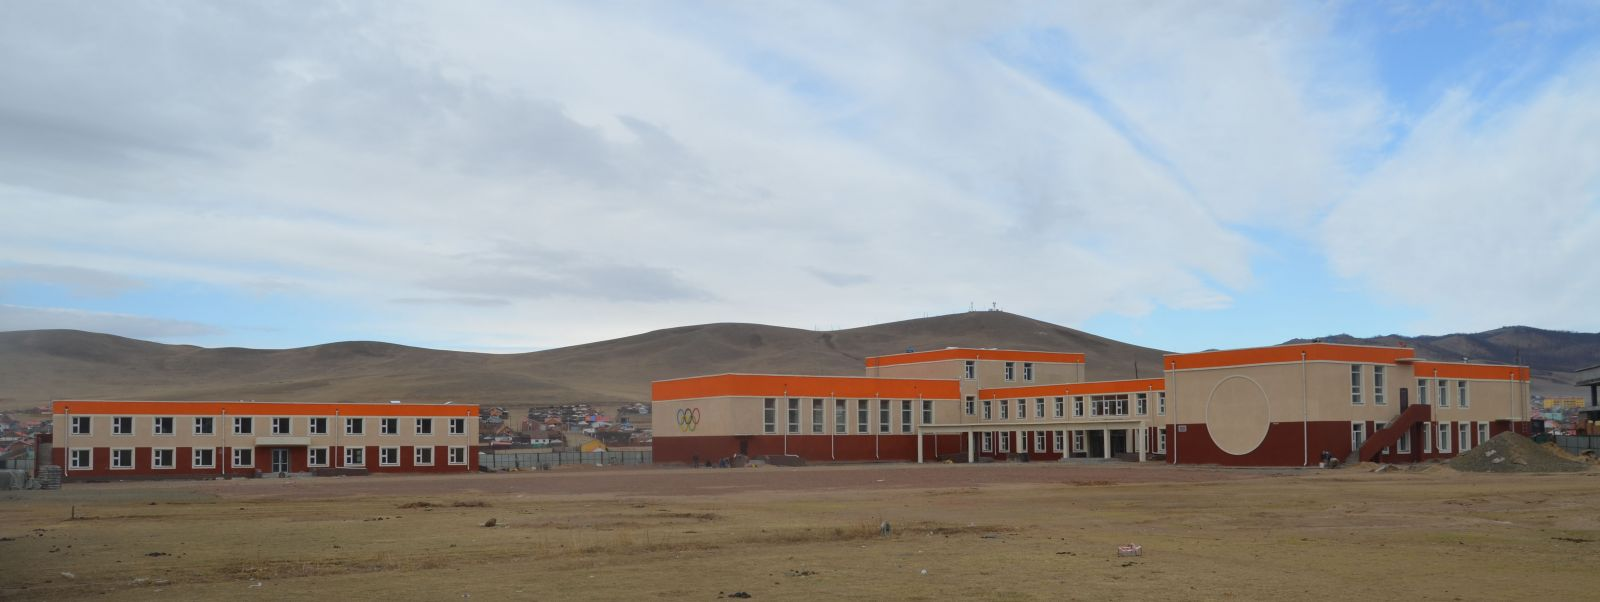 Sports School in Arkhangai province